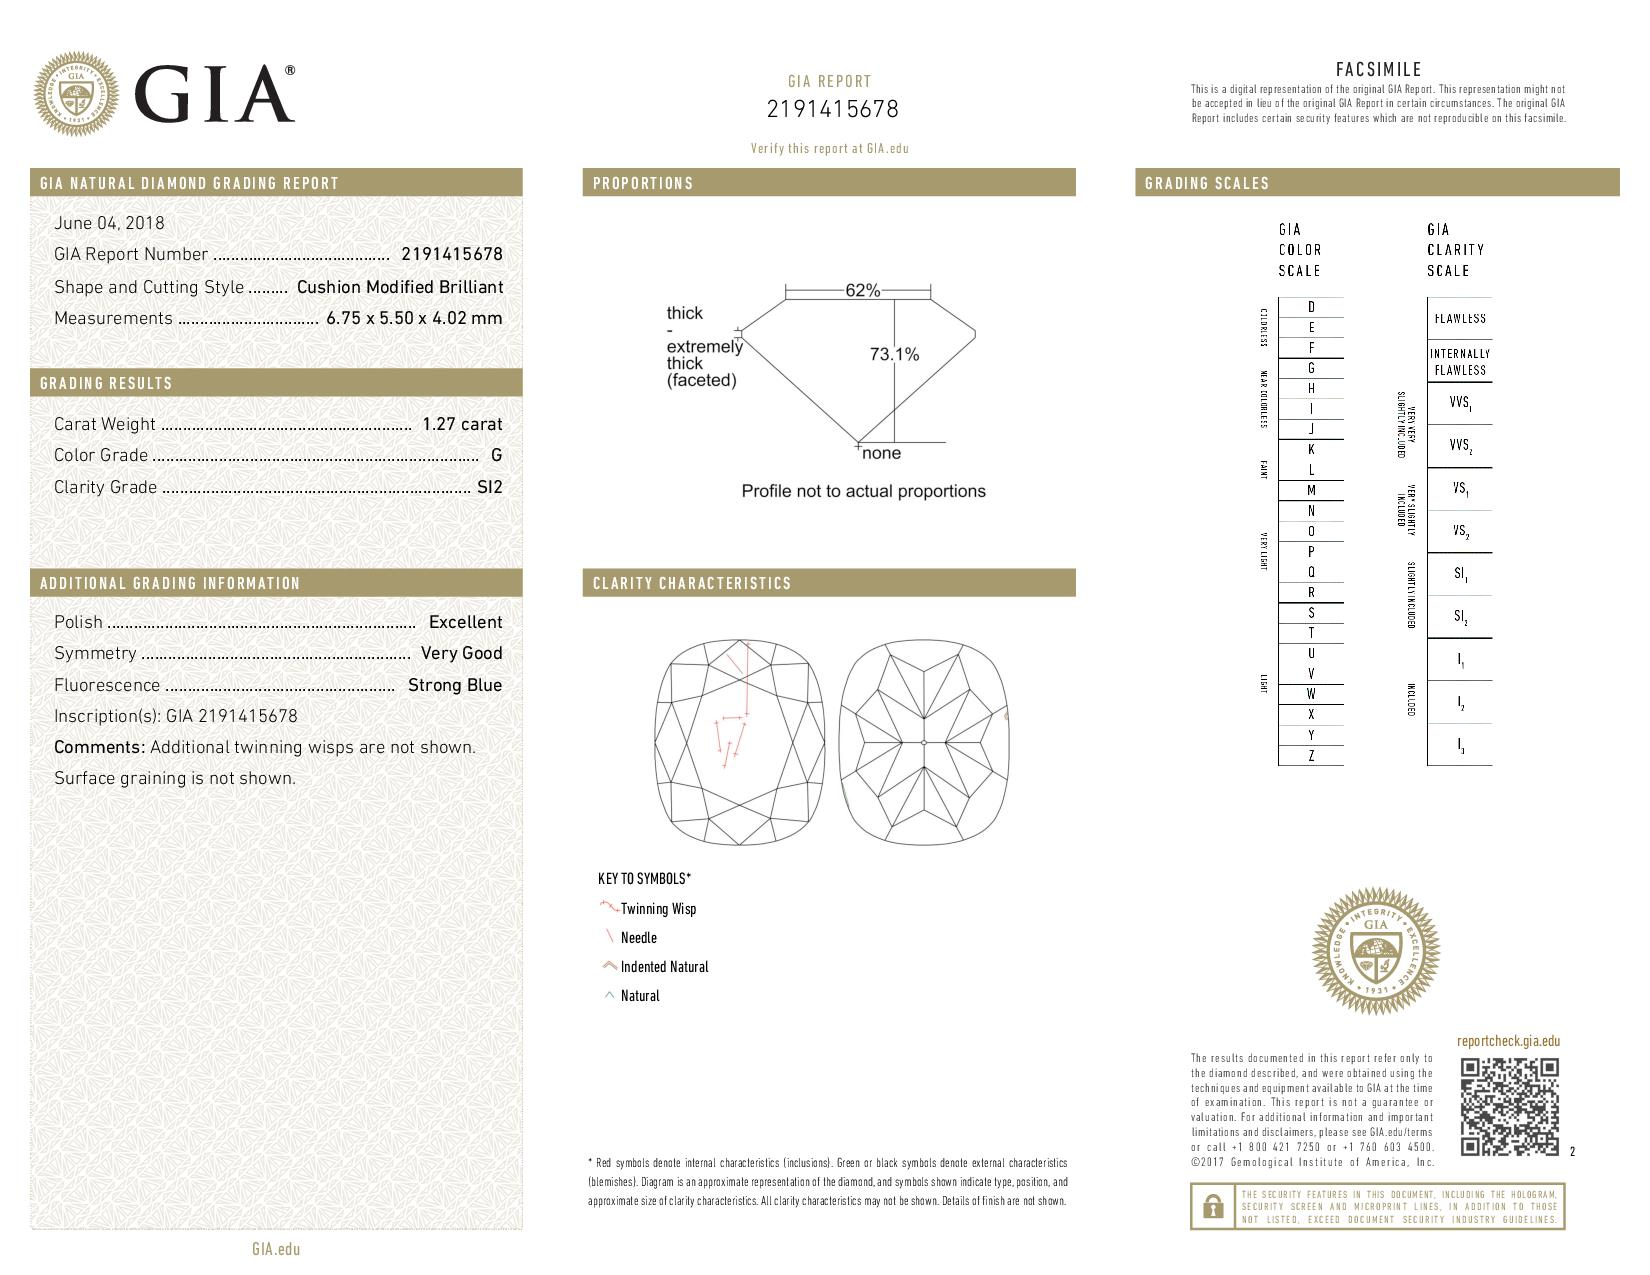 This is a 1.27 carat cushion shape, G color, SI2 clarity natural diamond accompanied by a GIA grading report.